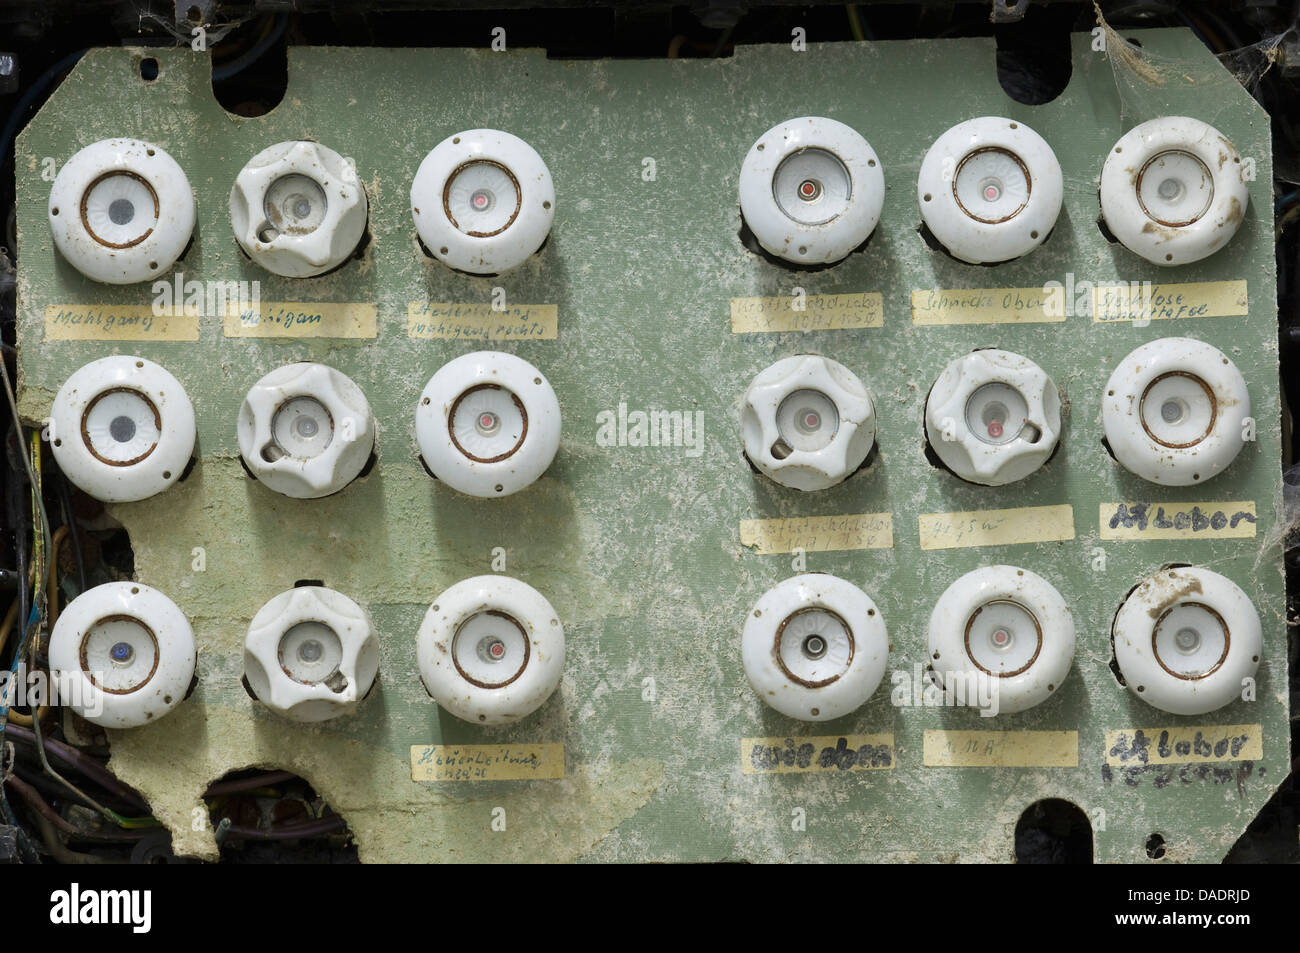 hight resolution of germany antique old dusty fuse box